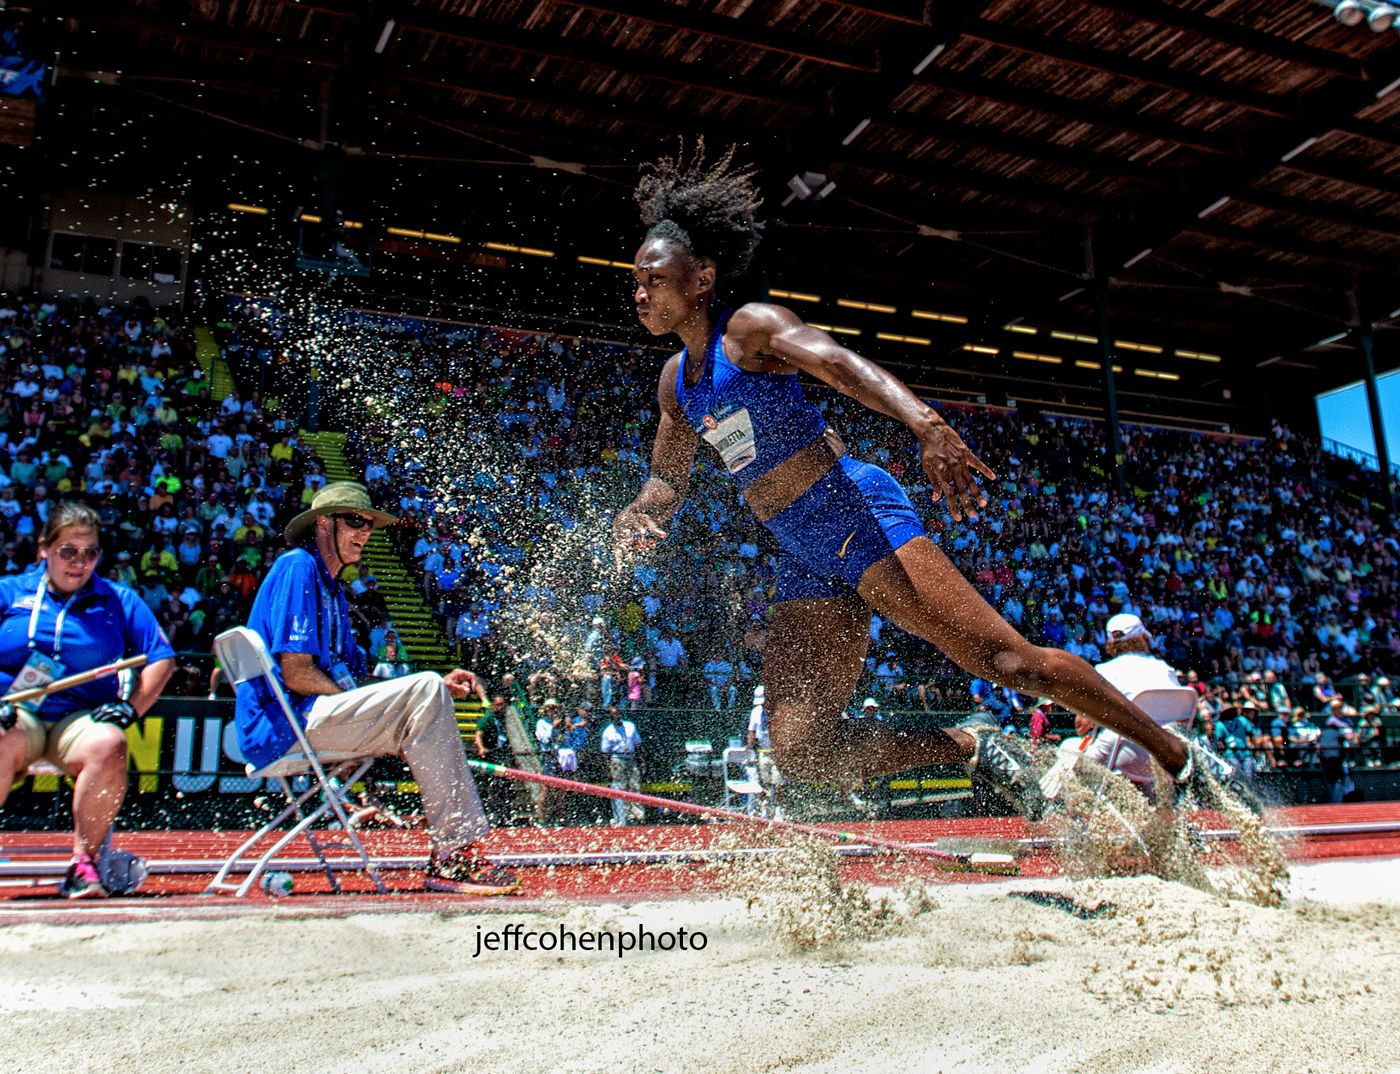 1r2016_oly_trials_day_2_bartoletta_jl_jump_jeff_cohen_photo_9089_web.jpg